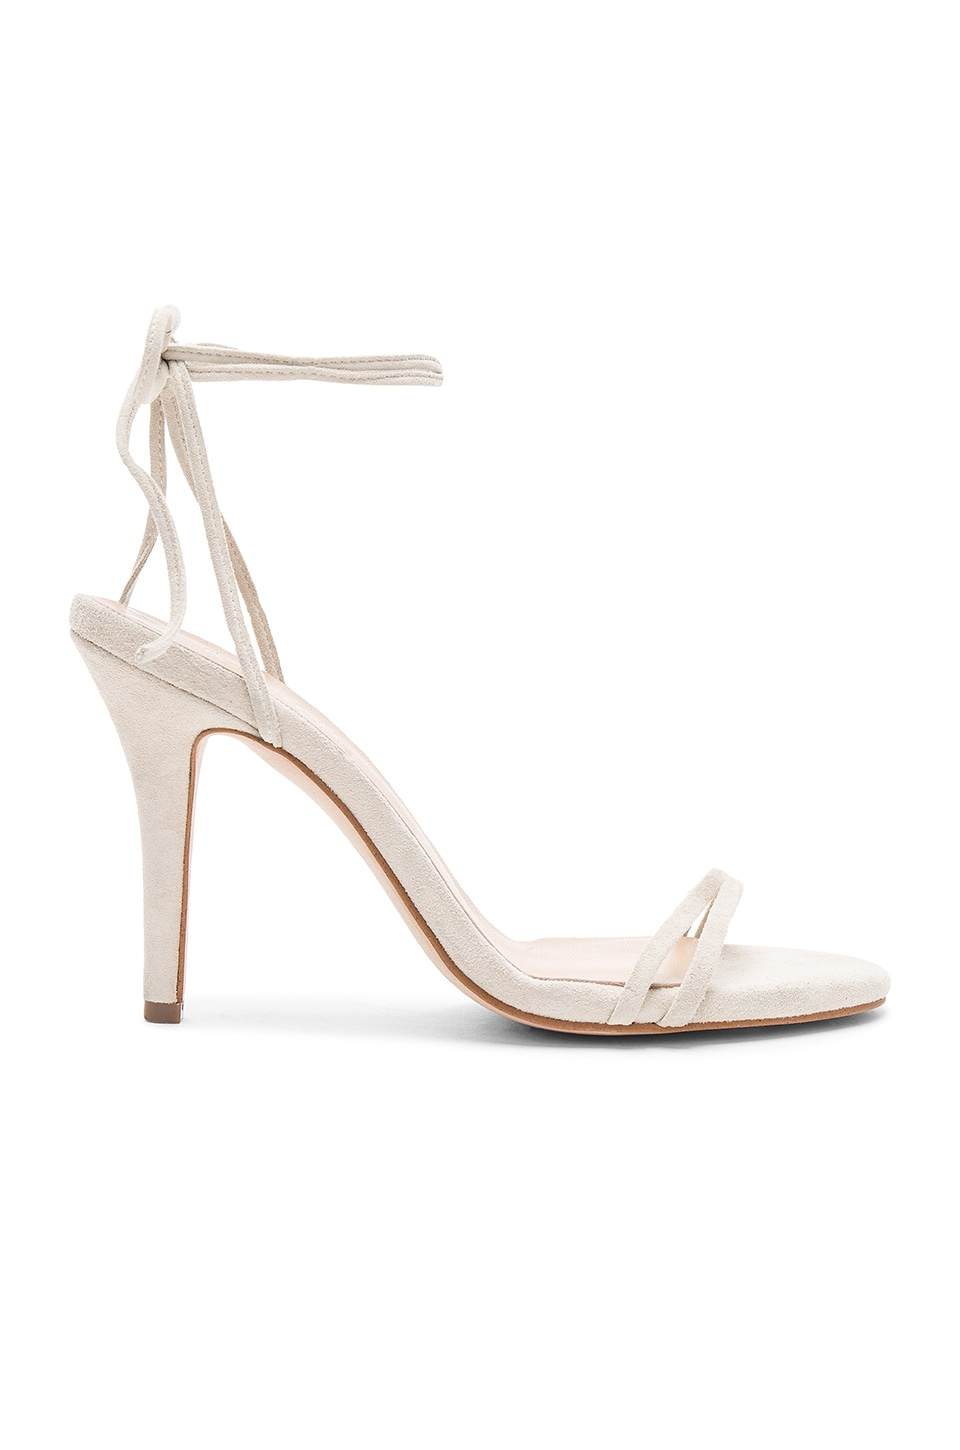 The Mode Collective Barely There Sandal in Nude Suede